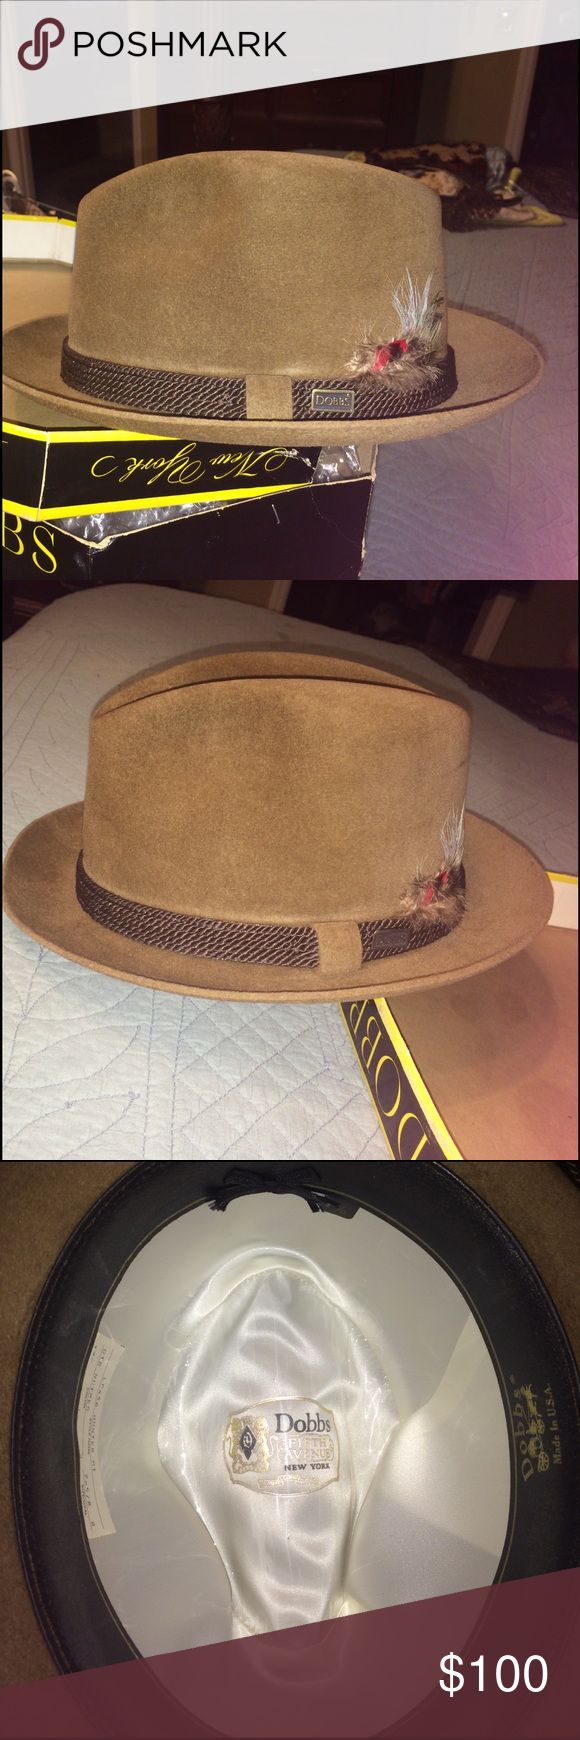 Men's Dobbs Hat Nutmeg suede with 1 inch cord around band with feather next to Dobbs name tag Dobbs Accessories Hats